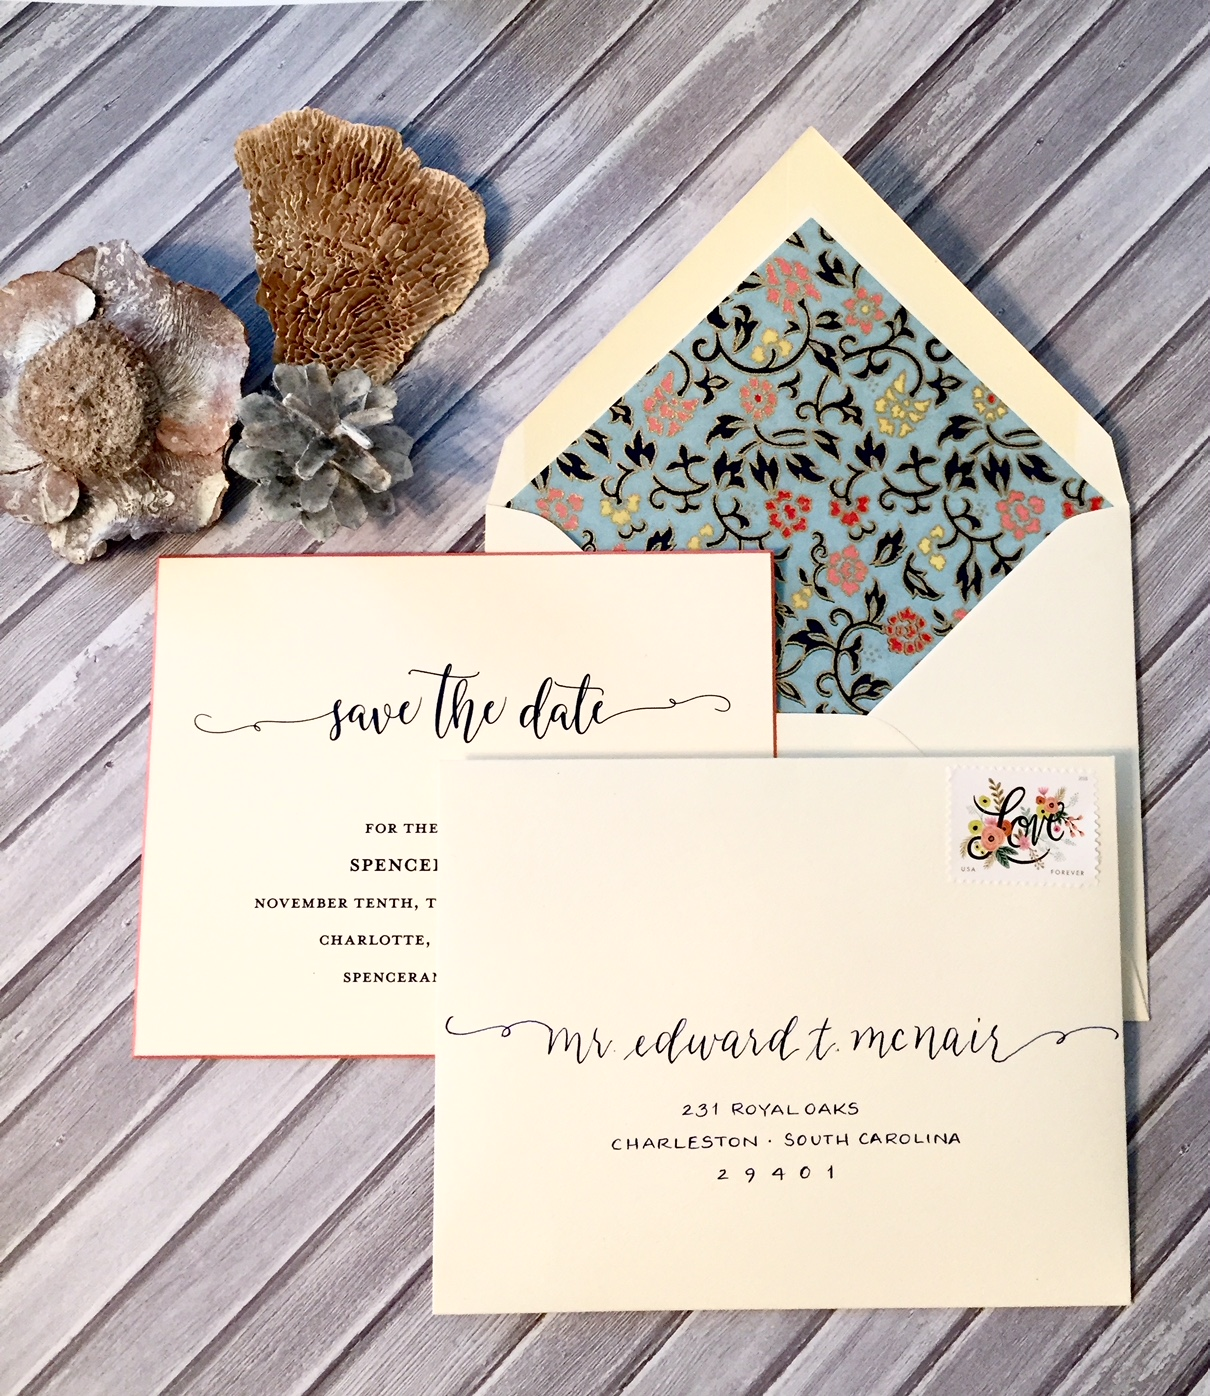 Save the dates written in a style to match the printed invitation in navy ink